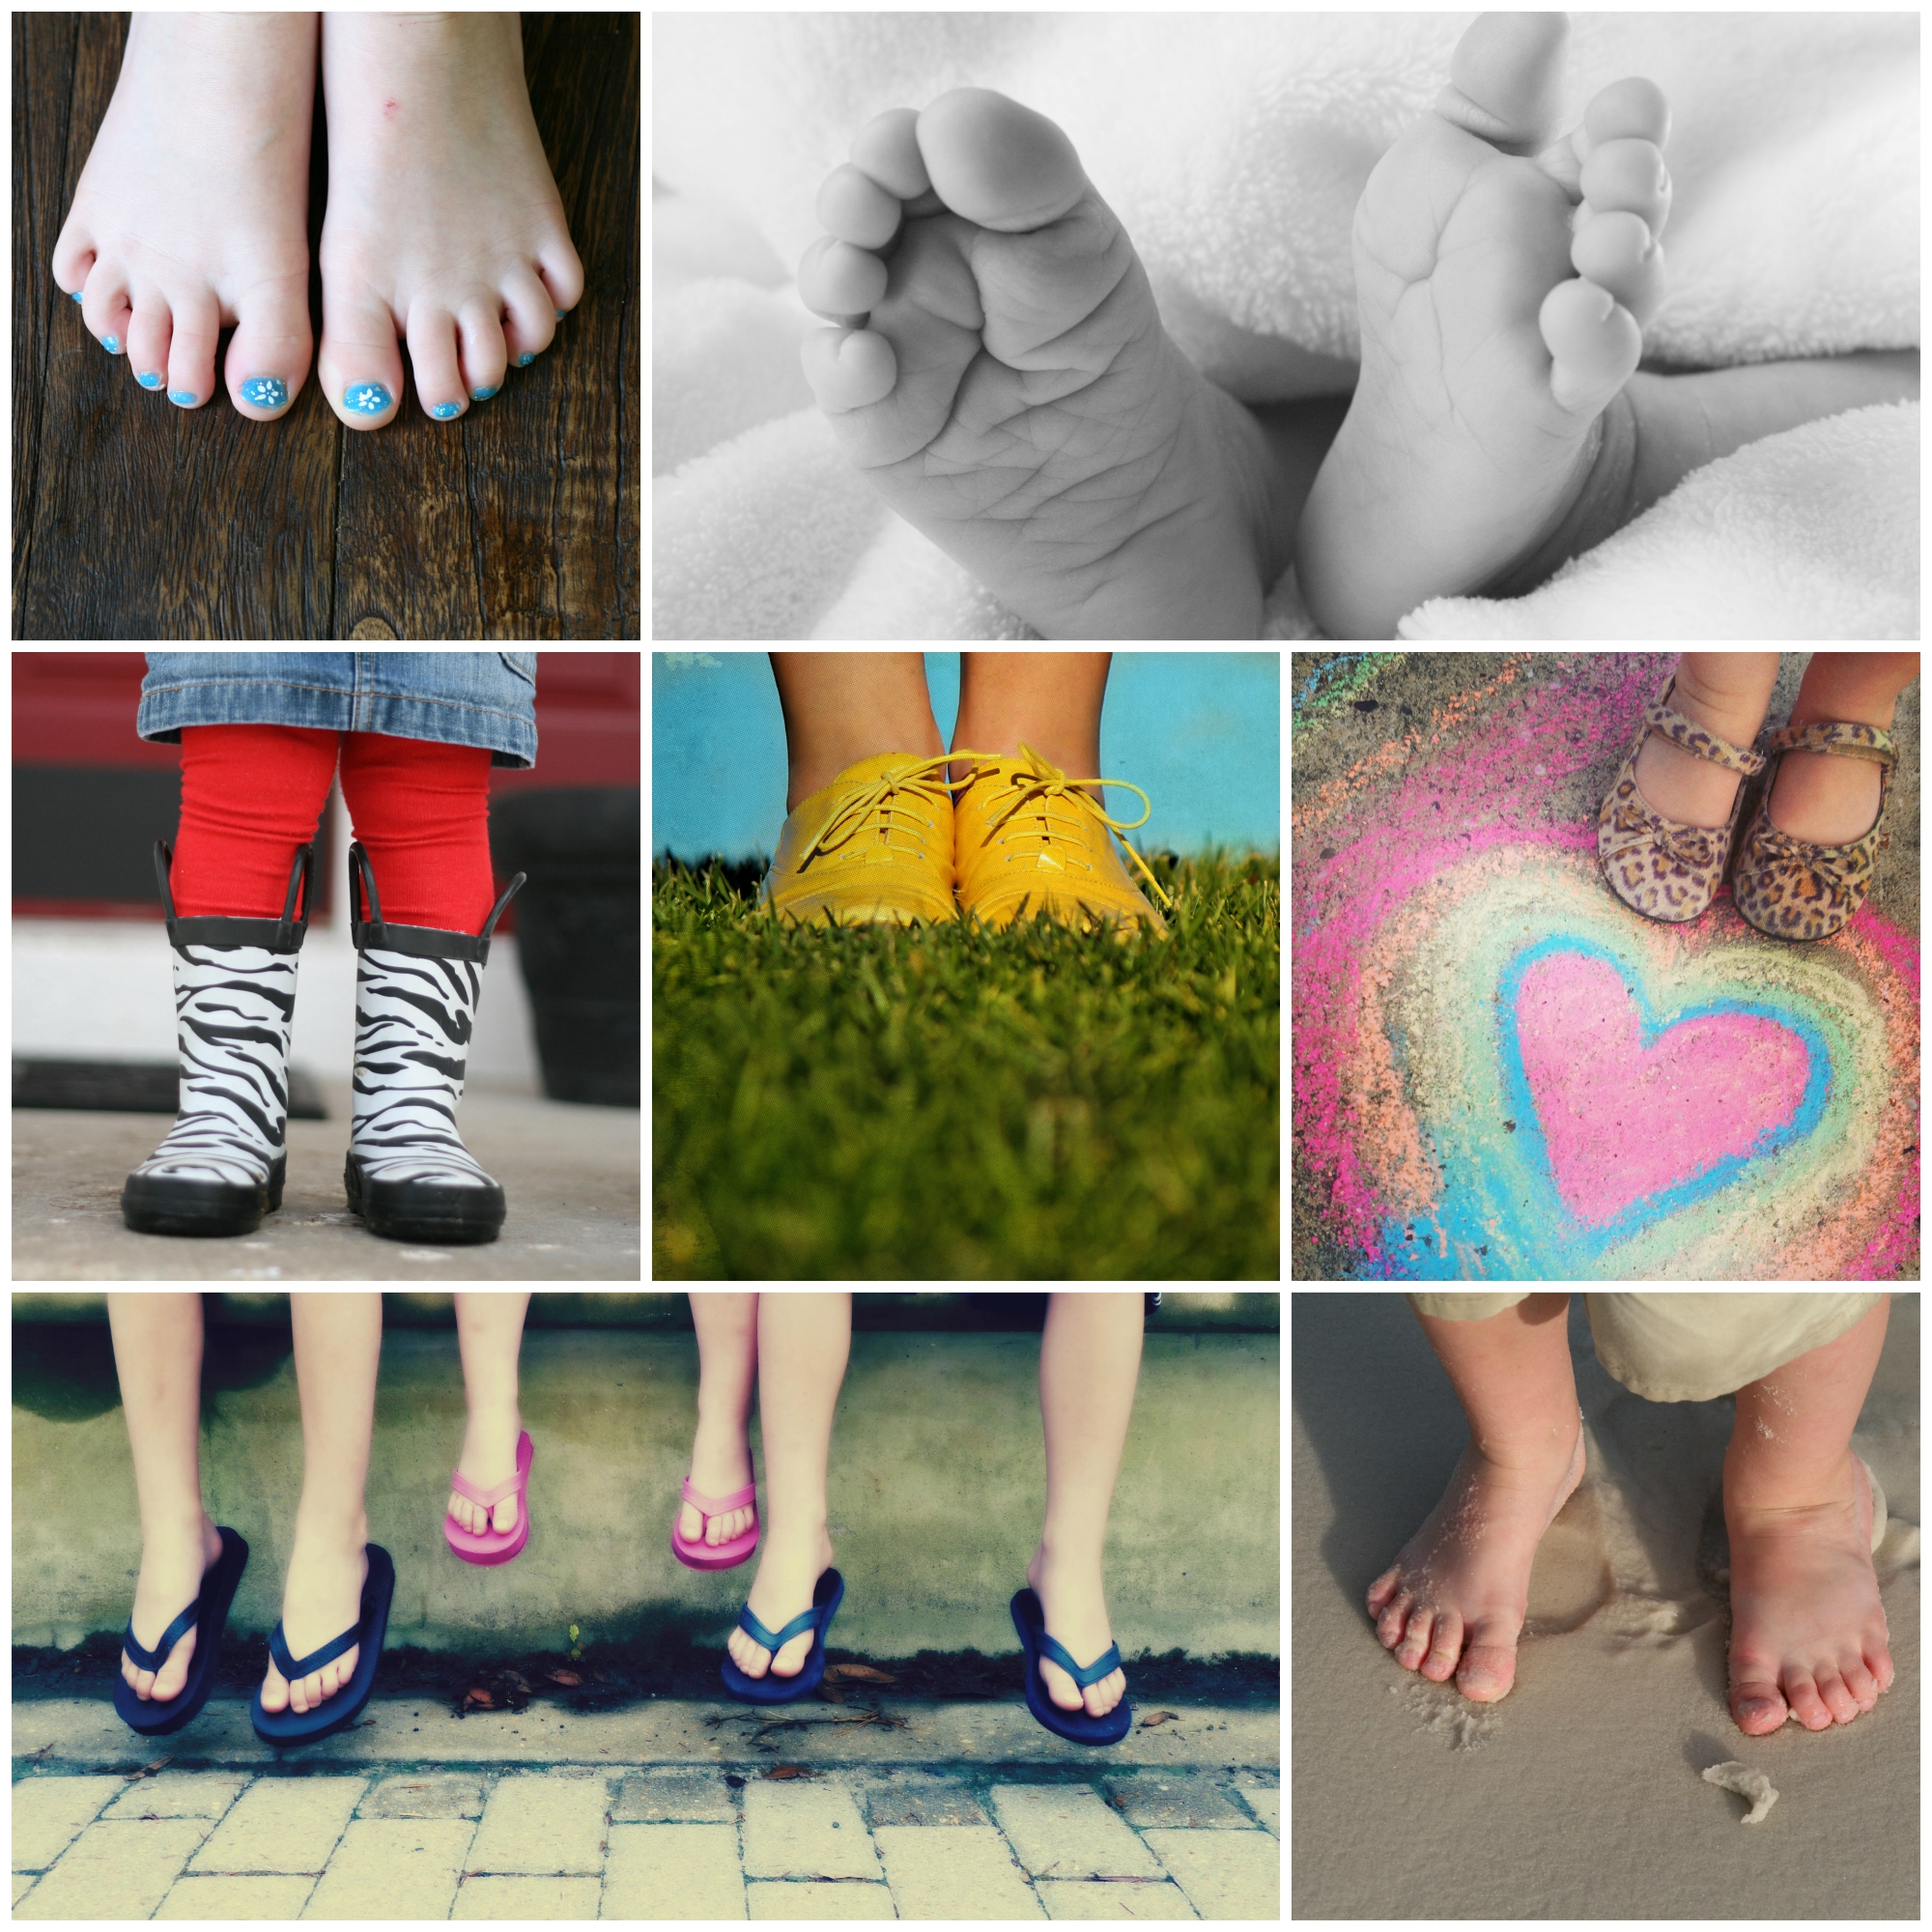 Fun Photo Ideas - feet